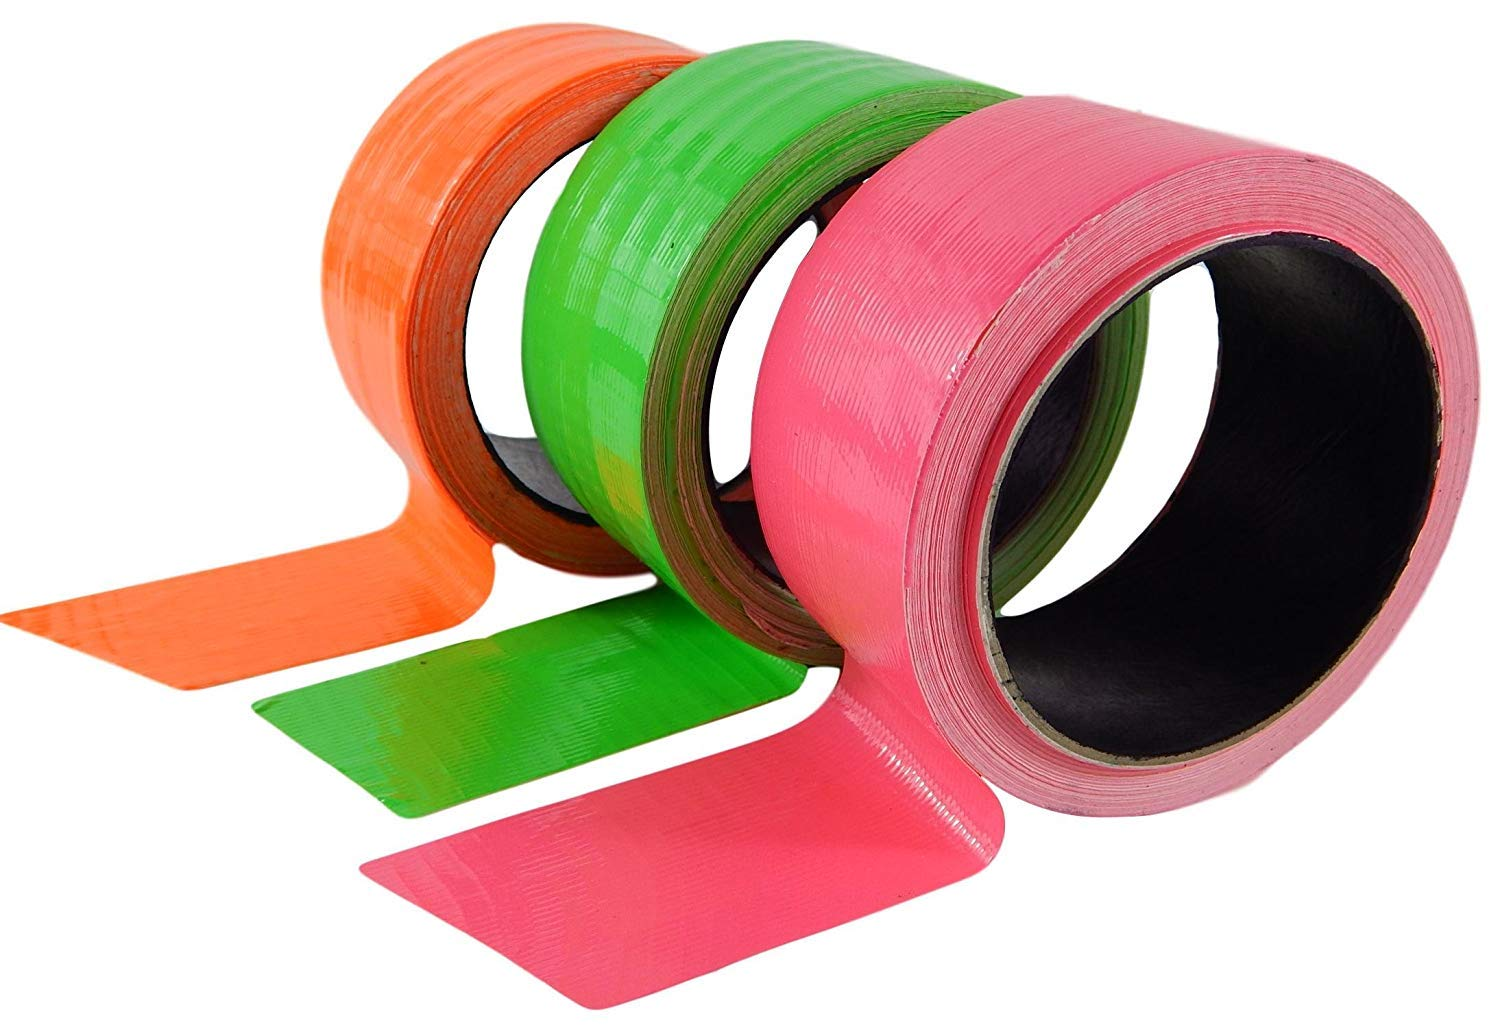 Tape All Duct Tape Colors 3-Pack Bundle Made in USA Total 135 Feet Hot Pink Hot Green Hot Orange